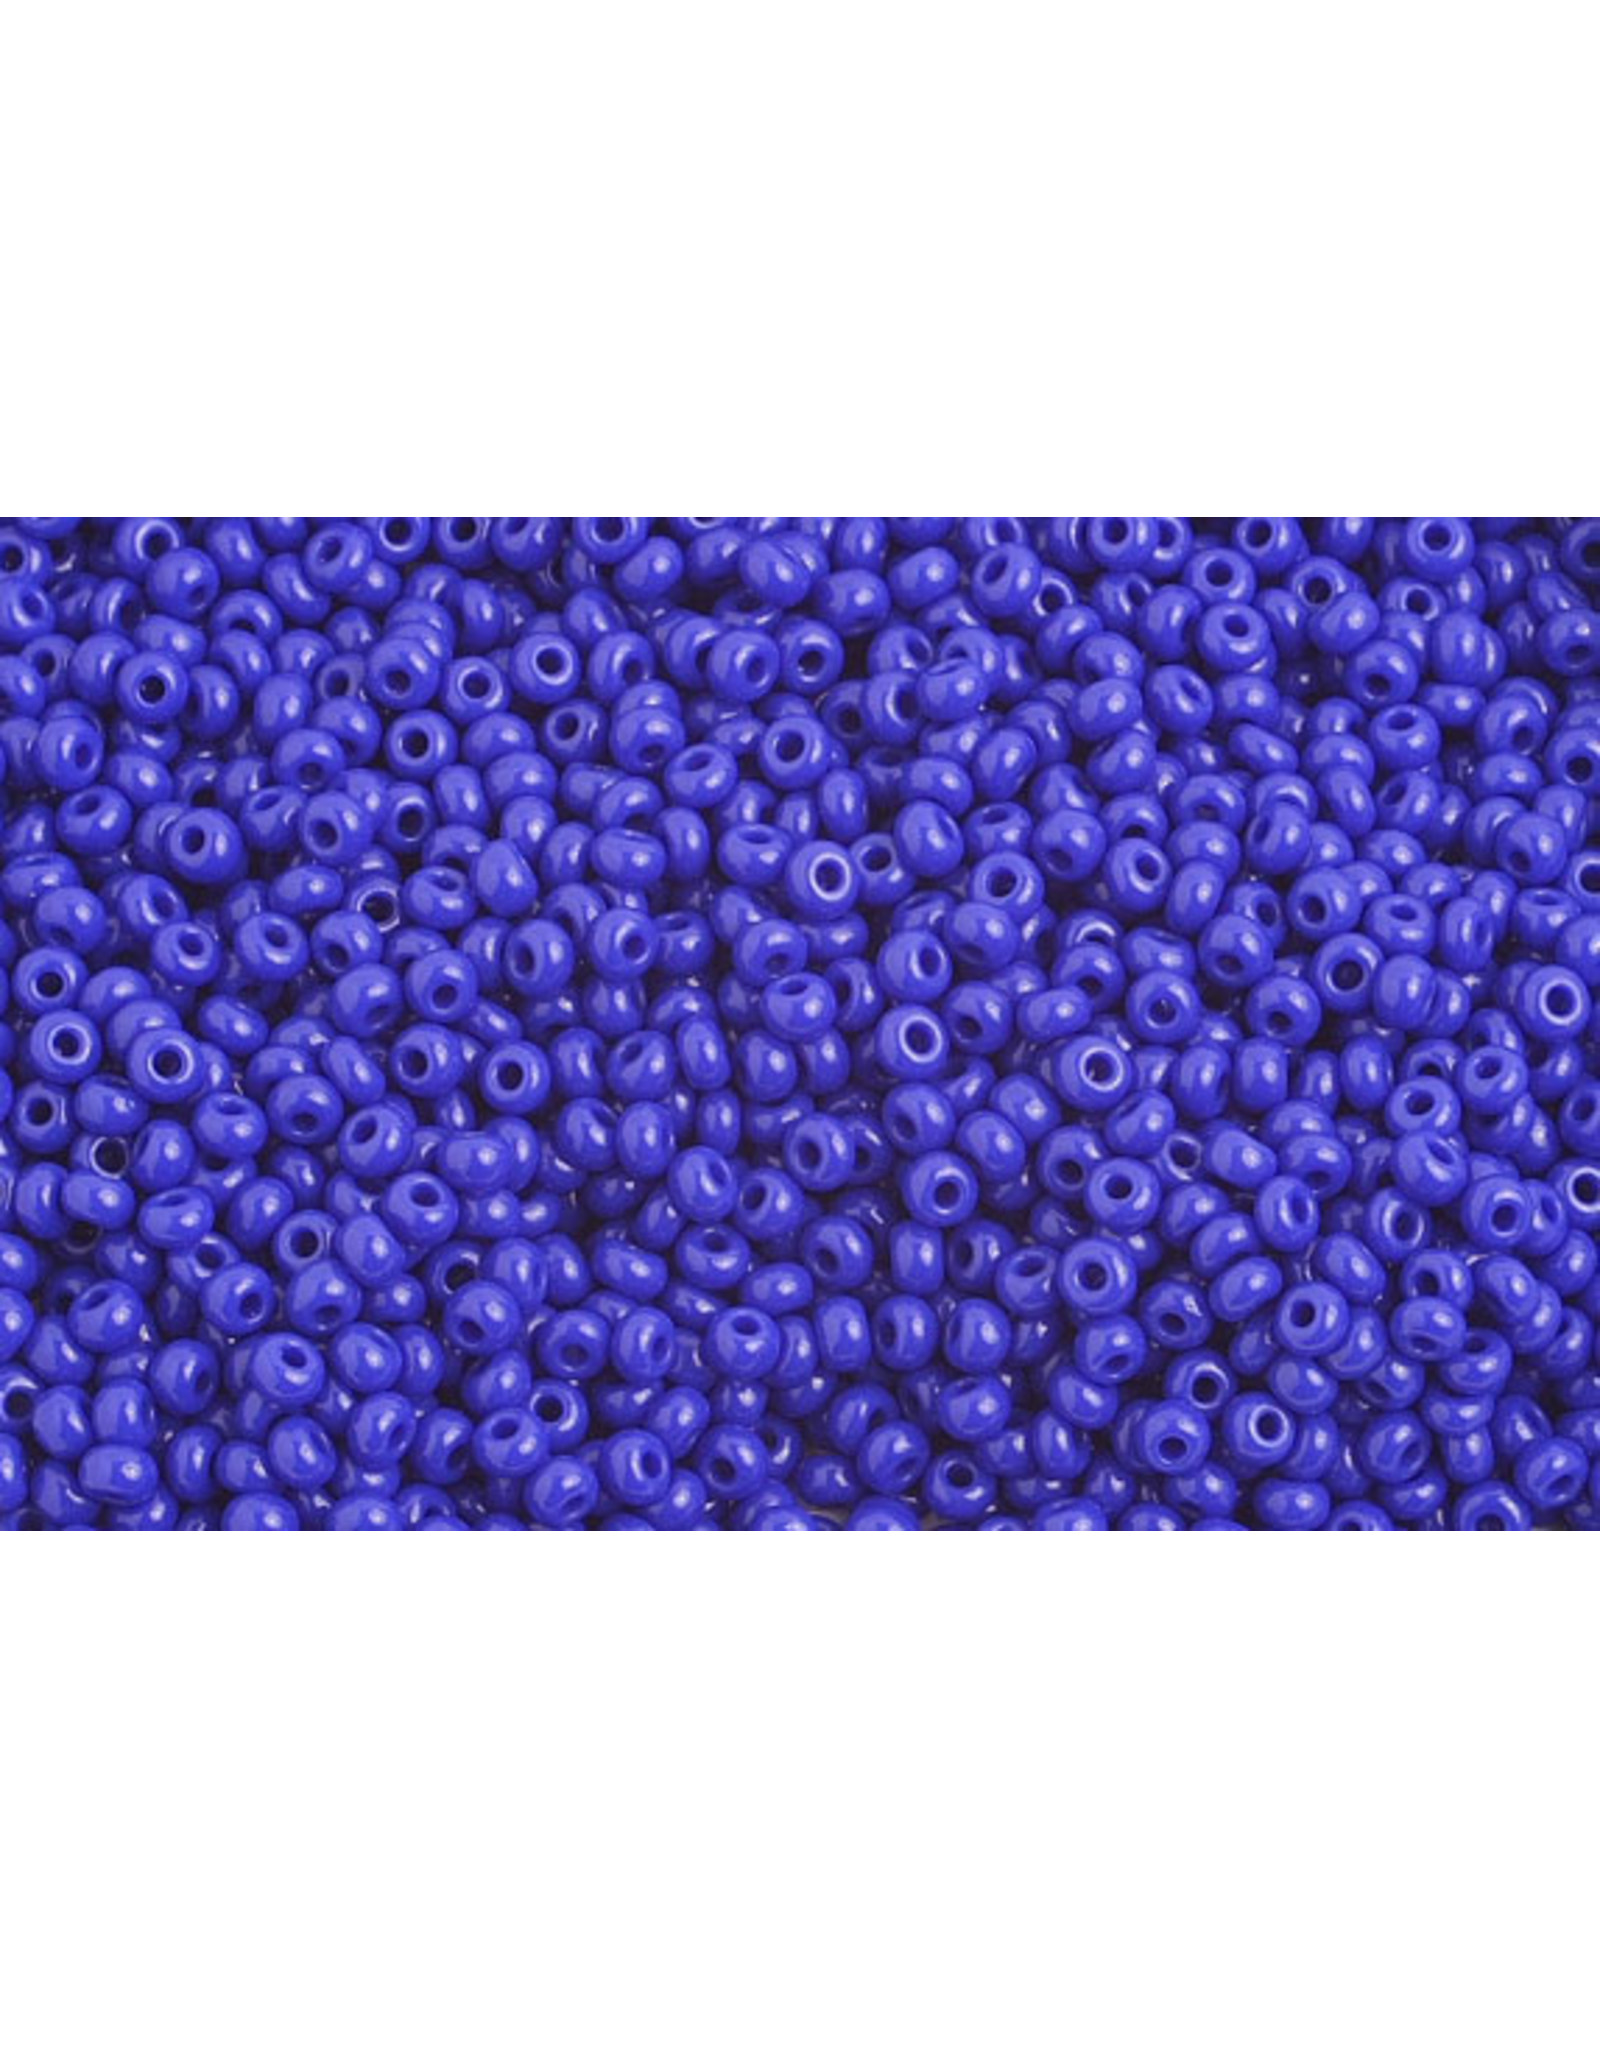 Czech 1044B 10 Czech Seed 250g Opaque Royal Blue